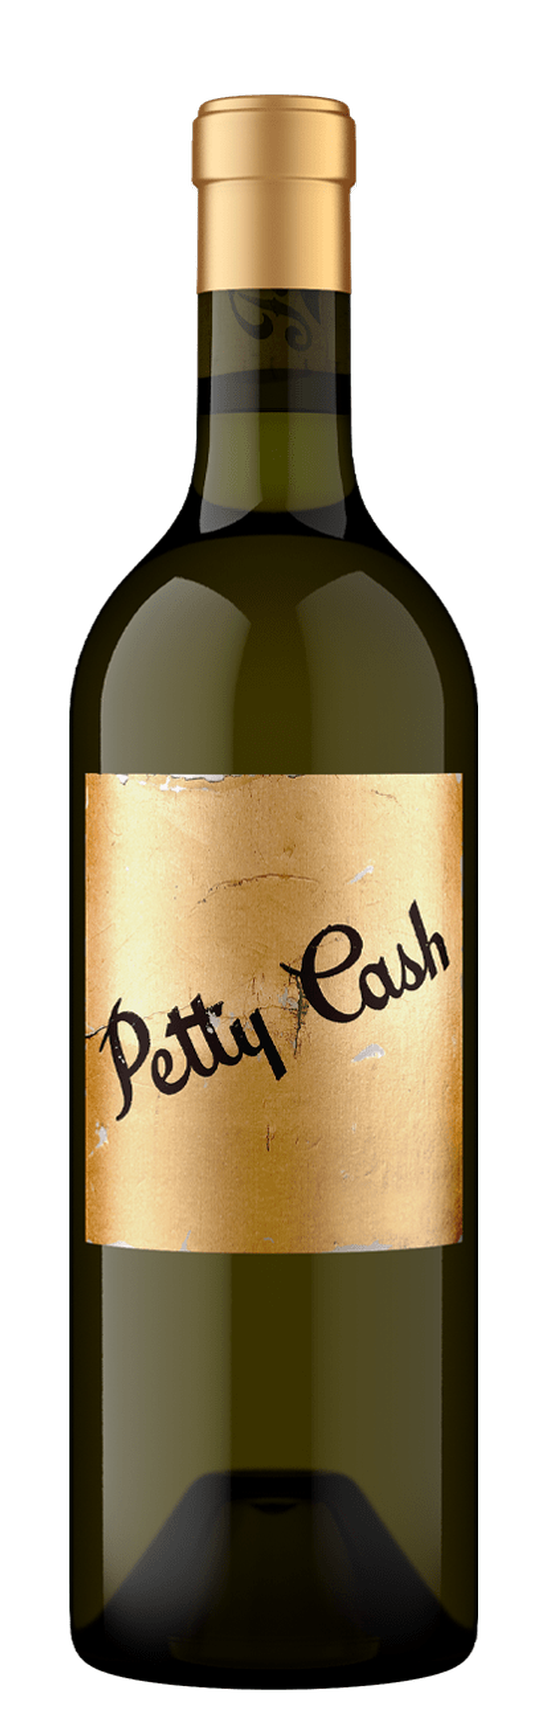 2017 Petty Cash, White Wine, Napa Valley